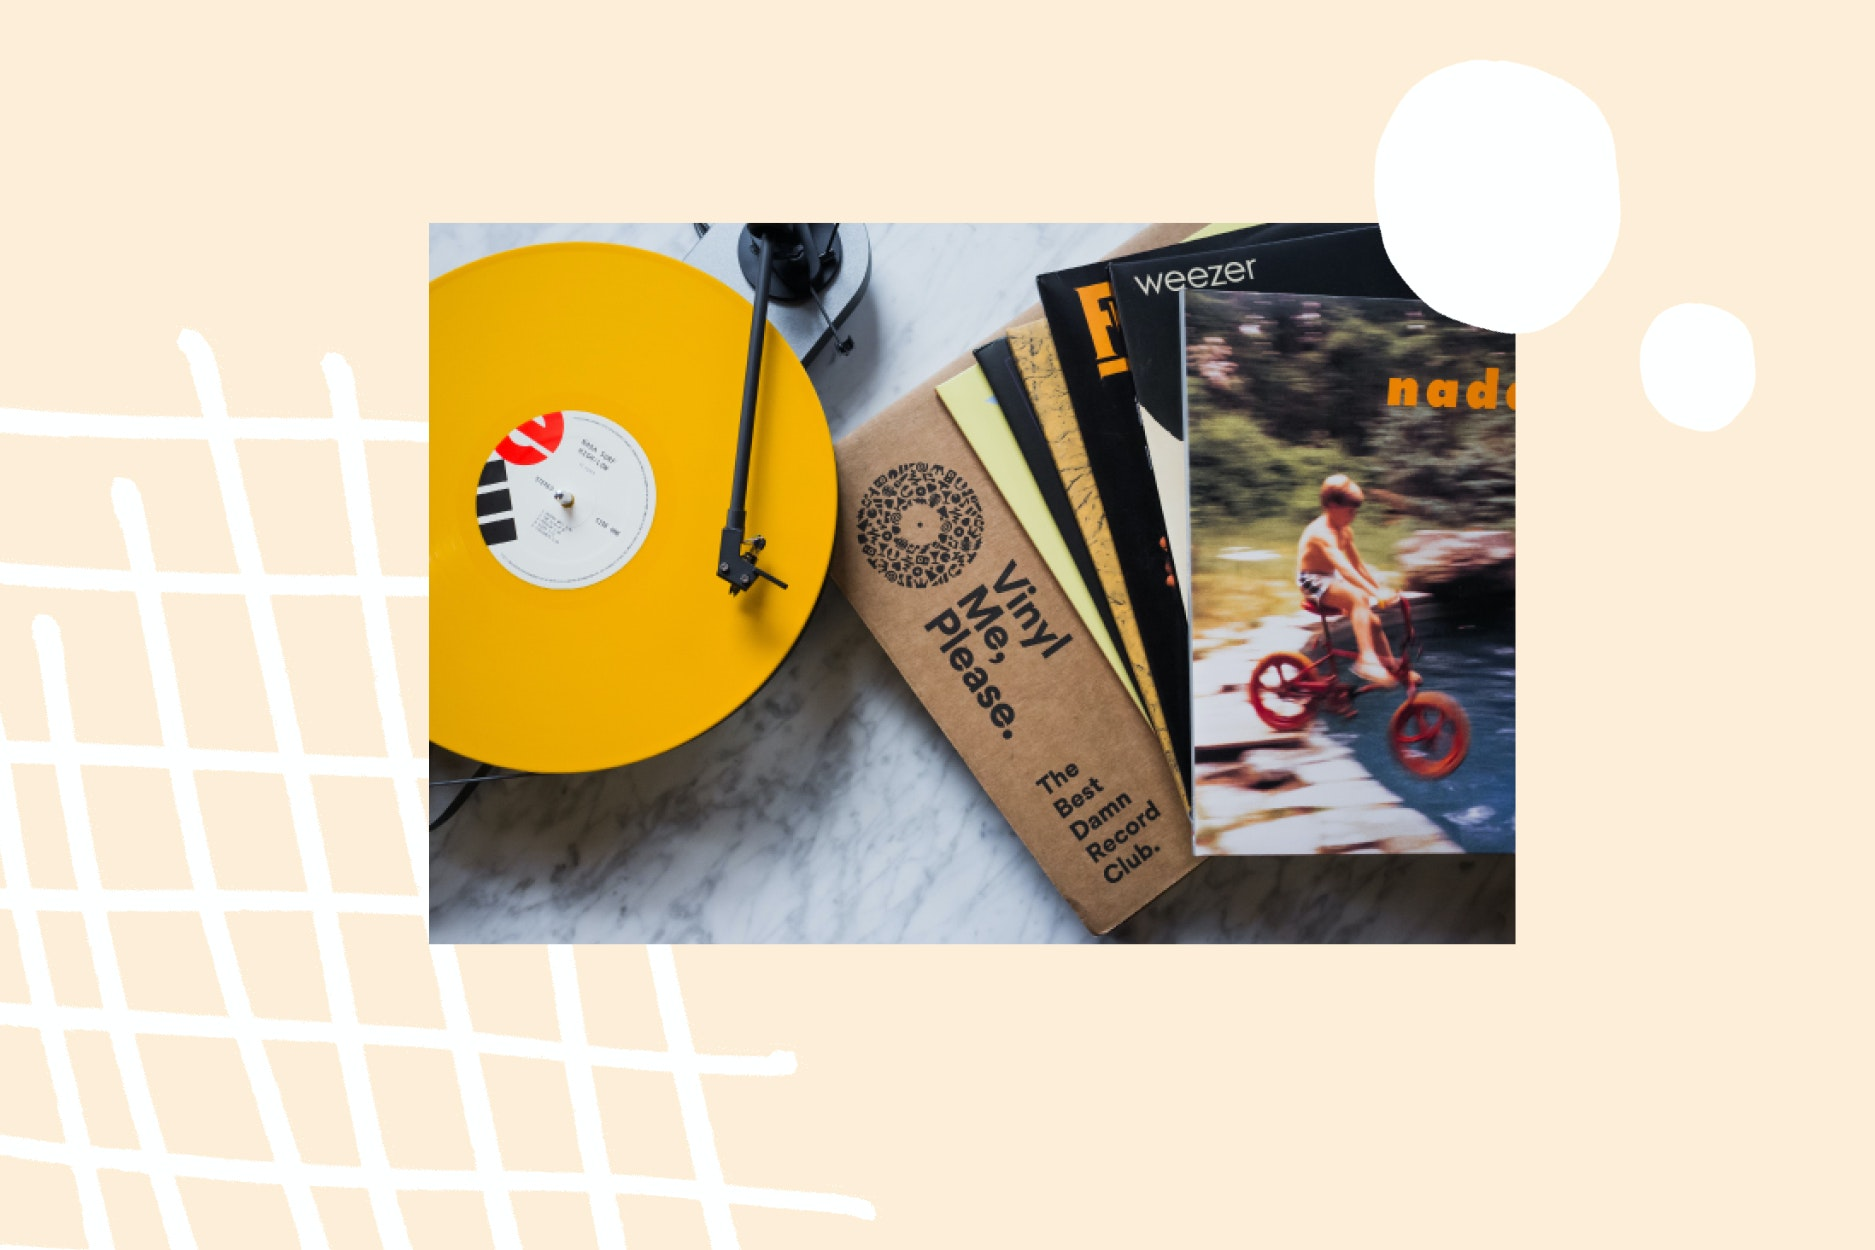 Grow that vinyl collection with records by global musicians.